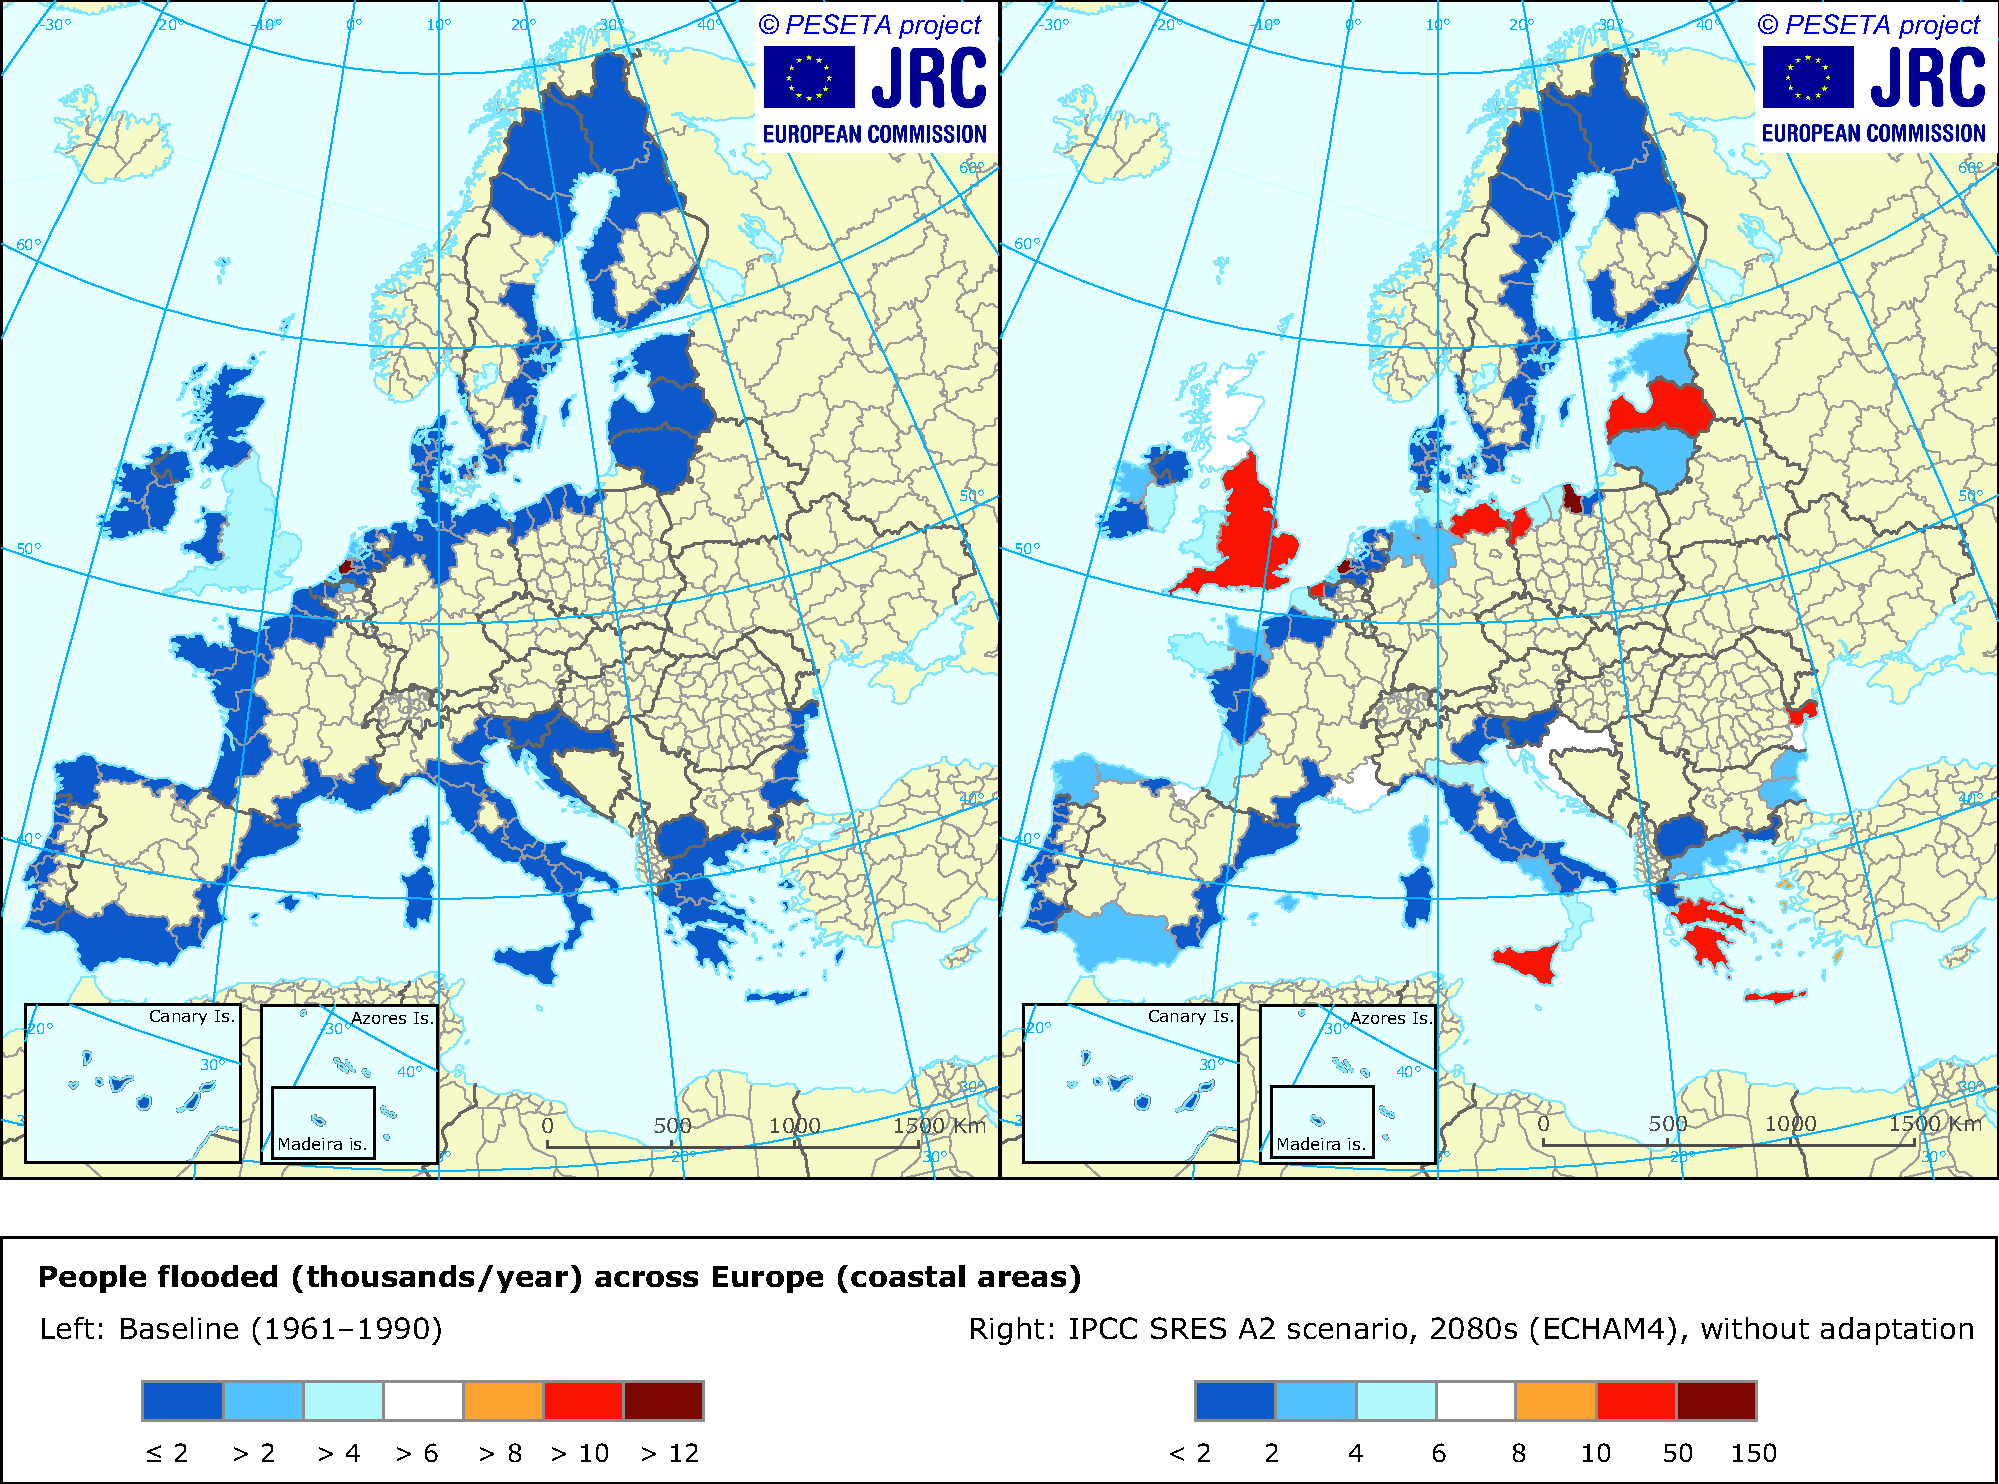 Modelled number of people flooded across Europe's coastal areas in 1961-1990 and in the 2080s